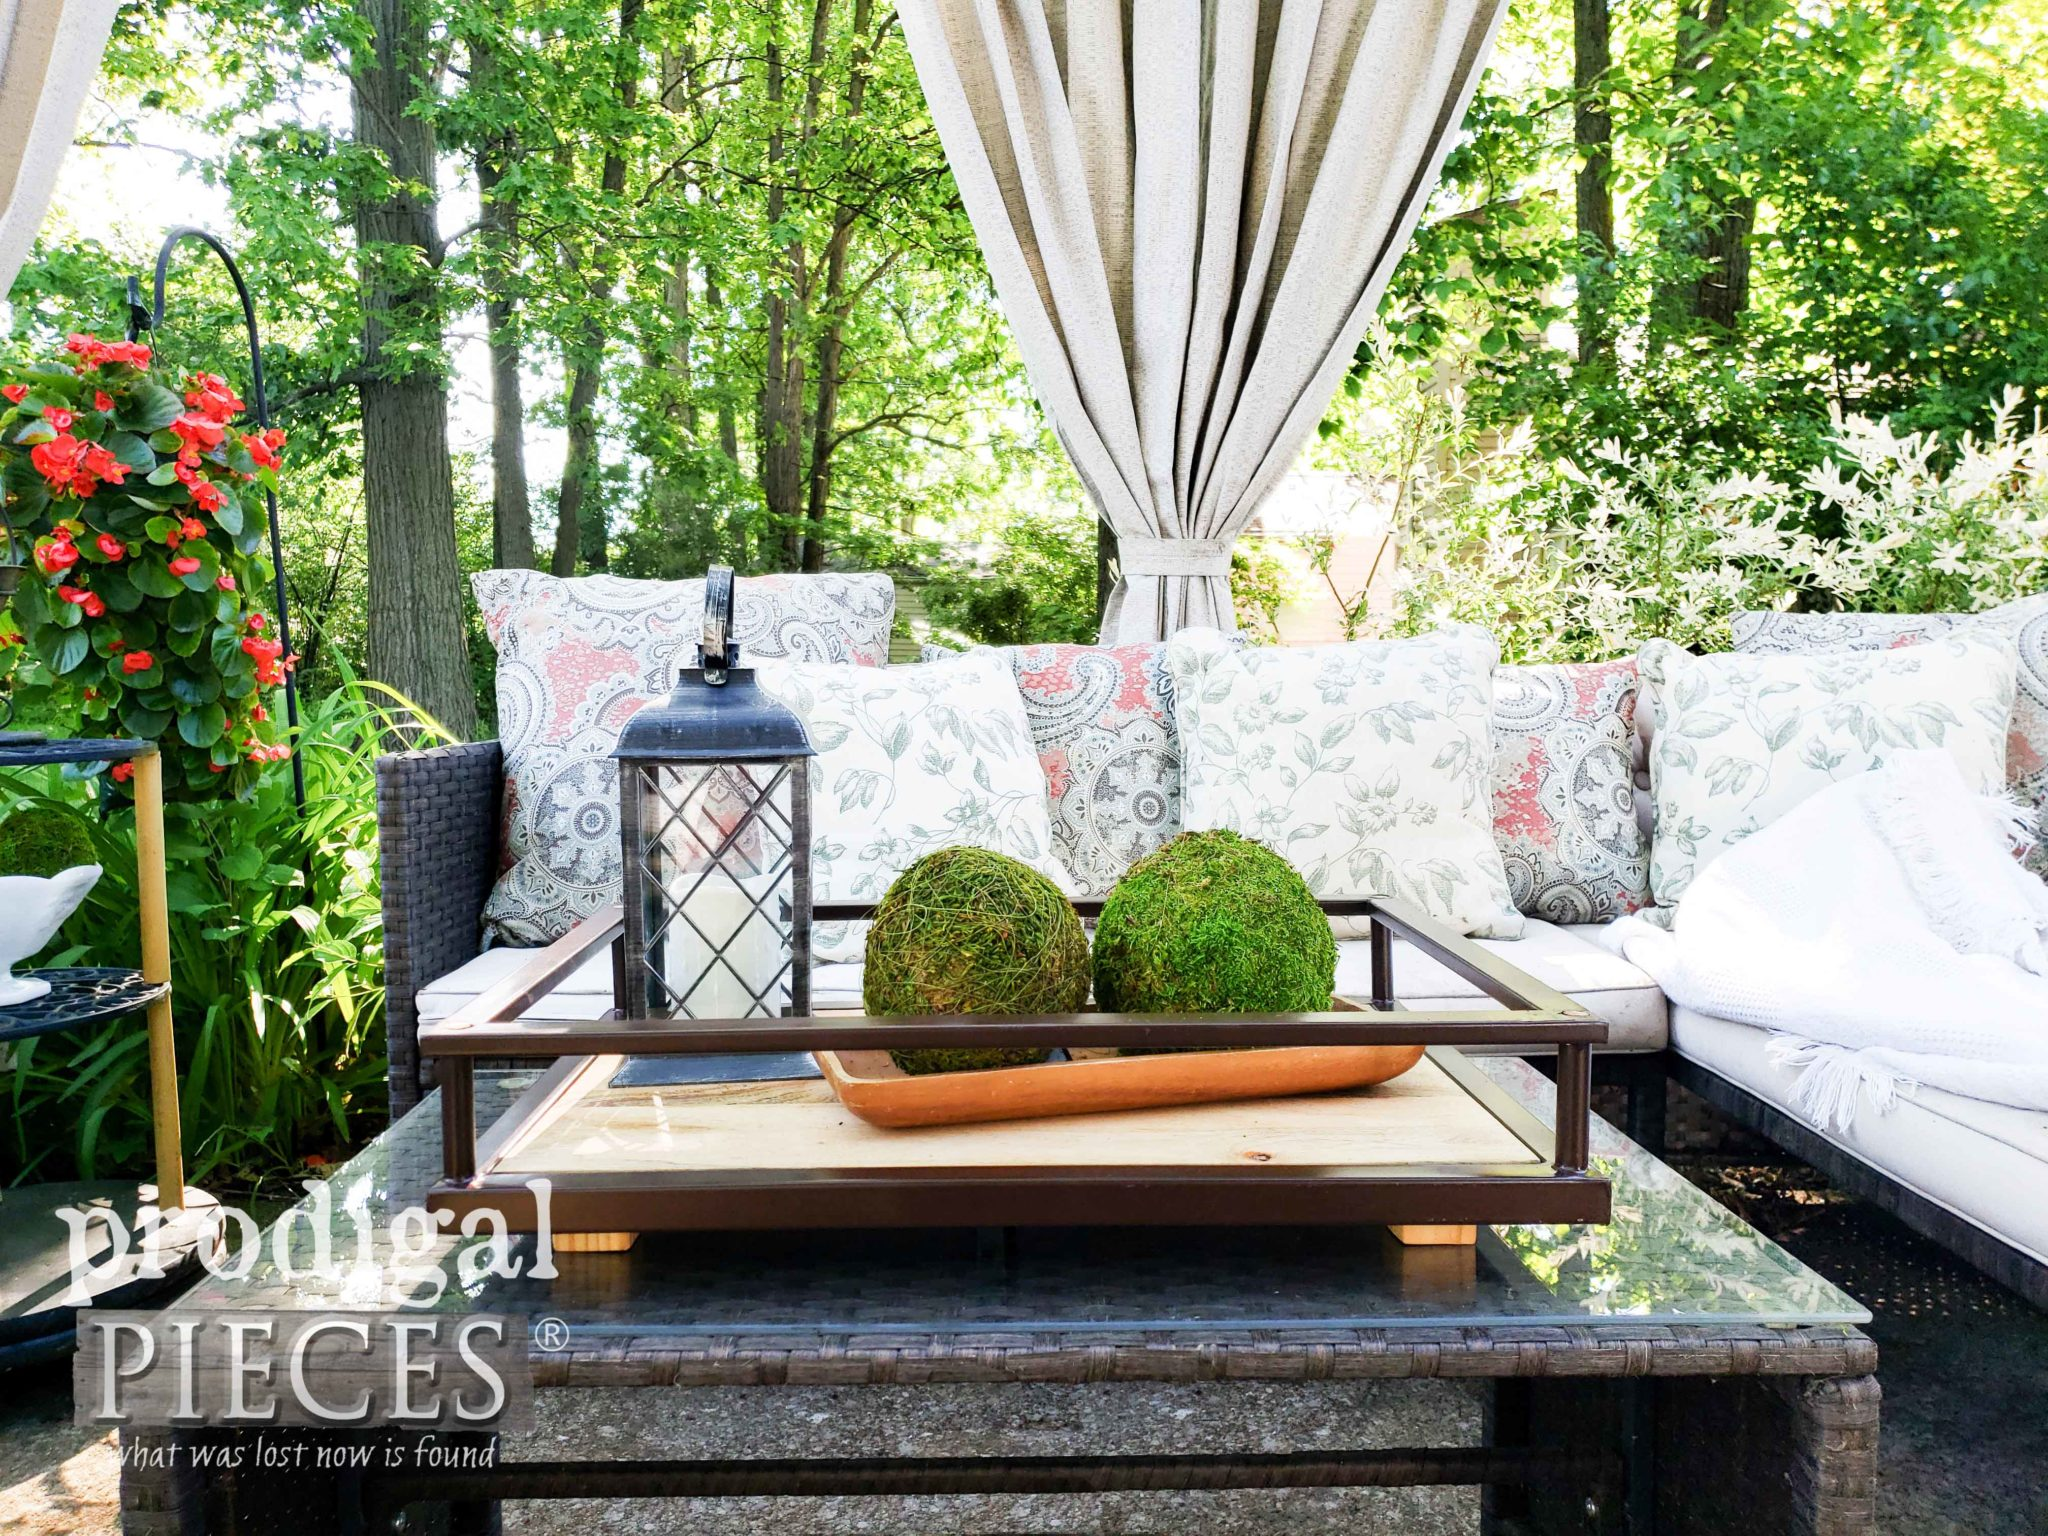 Reclaimed Patio Decor with Upcycled Serving Trays from Bar Cart Serving Trays by Larissa of Prodigal Pieces | prodigalpieces.com #prodigalpieces #diy #home #homedecor #outdoor #patio